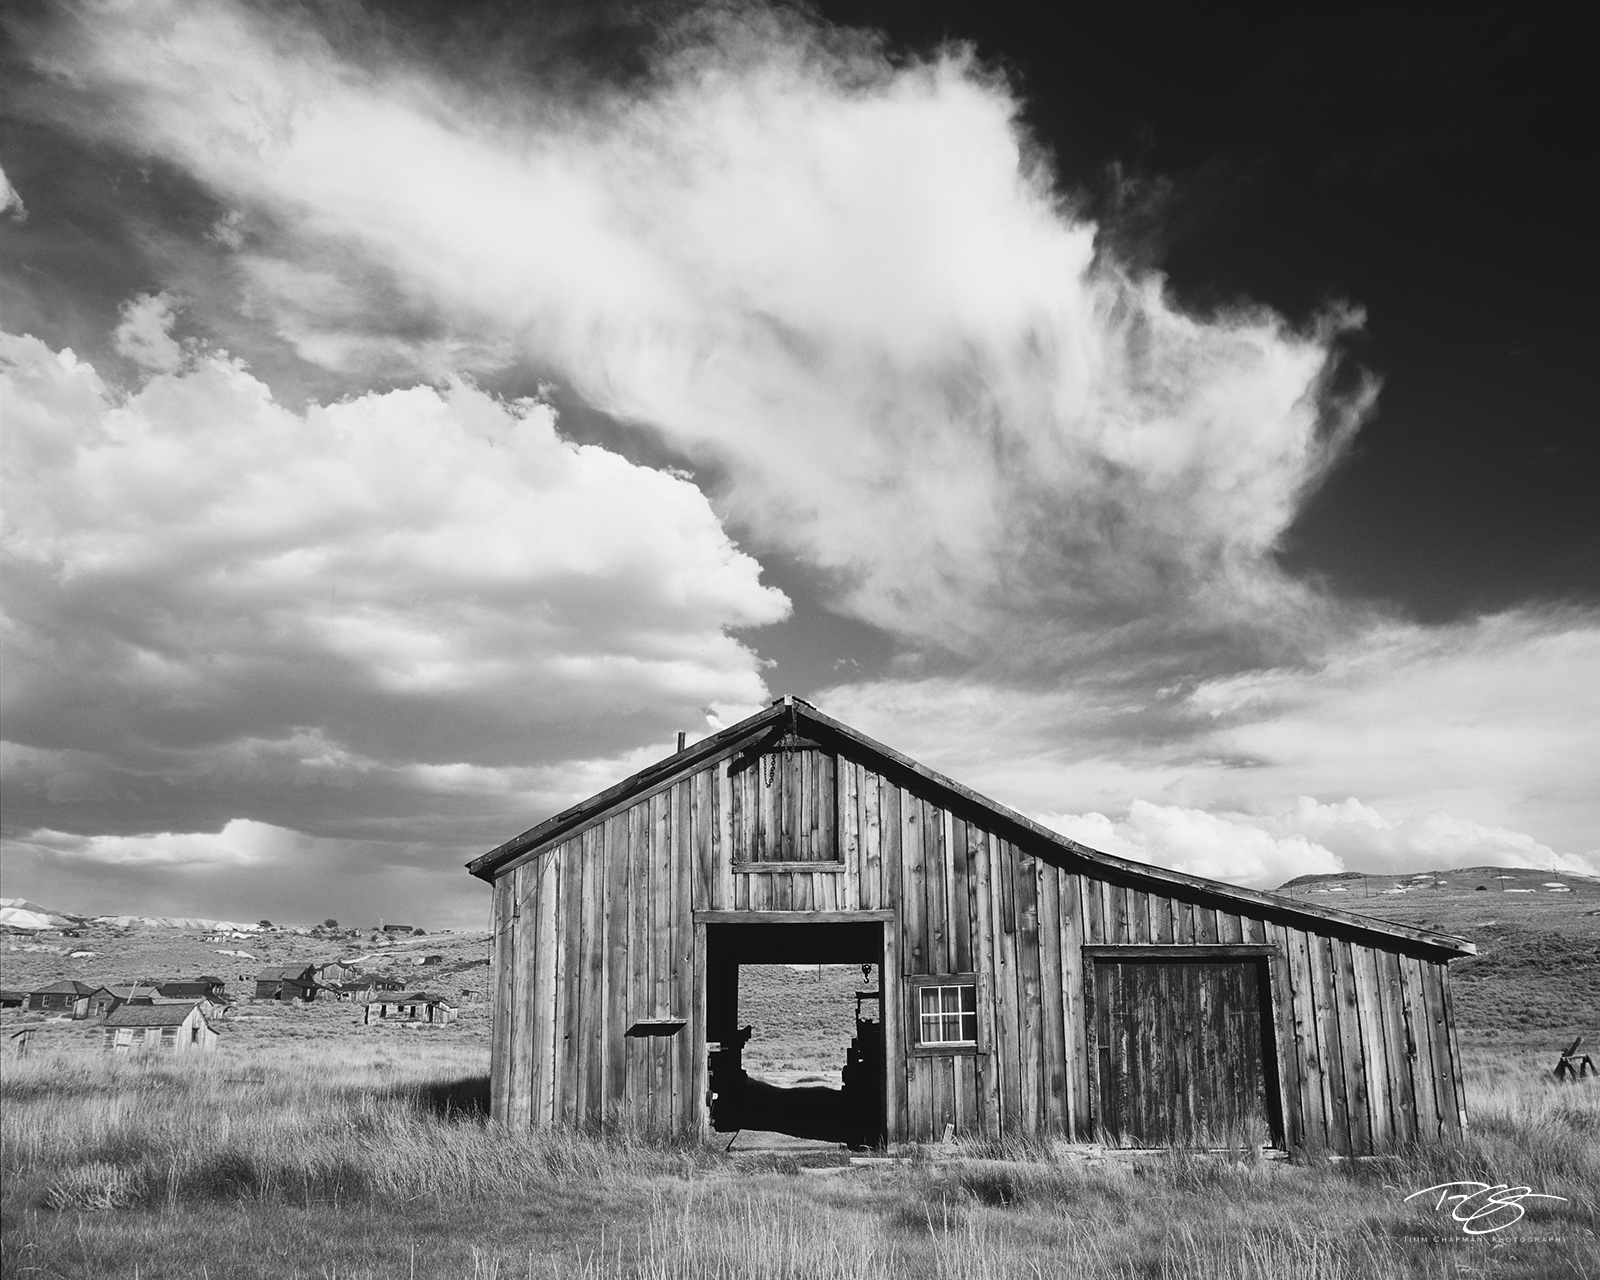 Bodie, California, old barn, storm clouds, derelict, building, carriage house, restoration, ghost town, derelict building, dramatic sky, storm clouds, tornado, photo